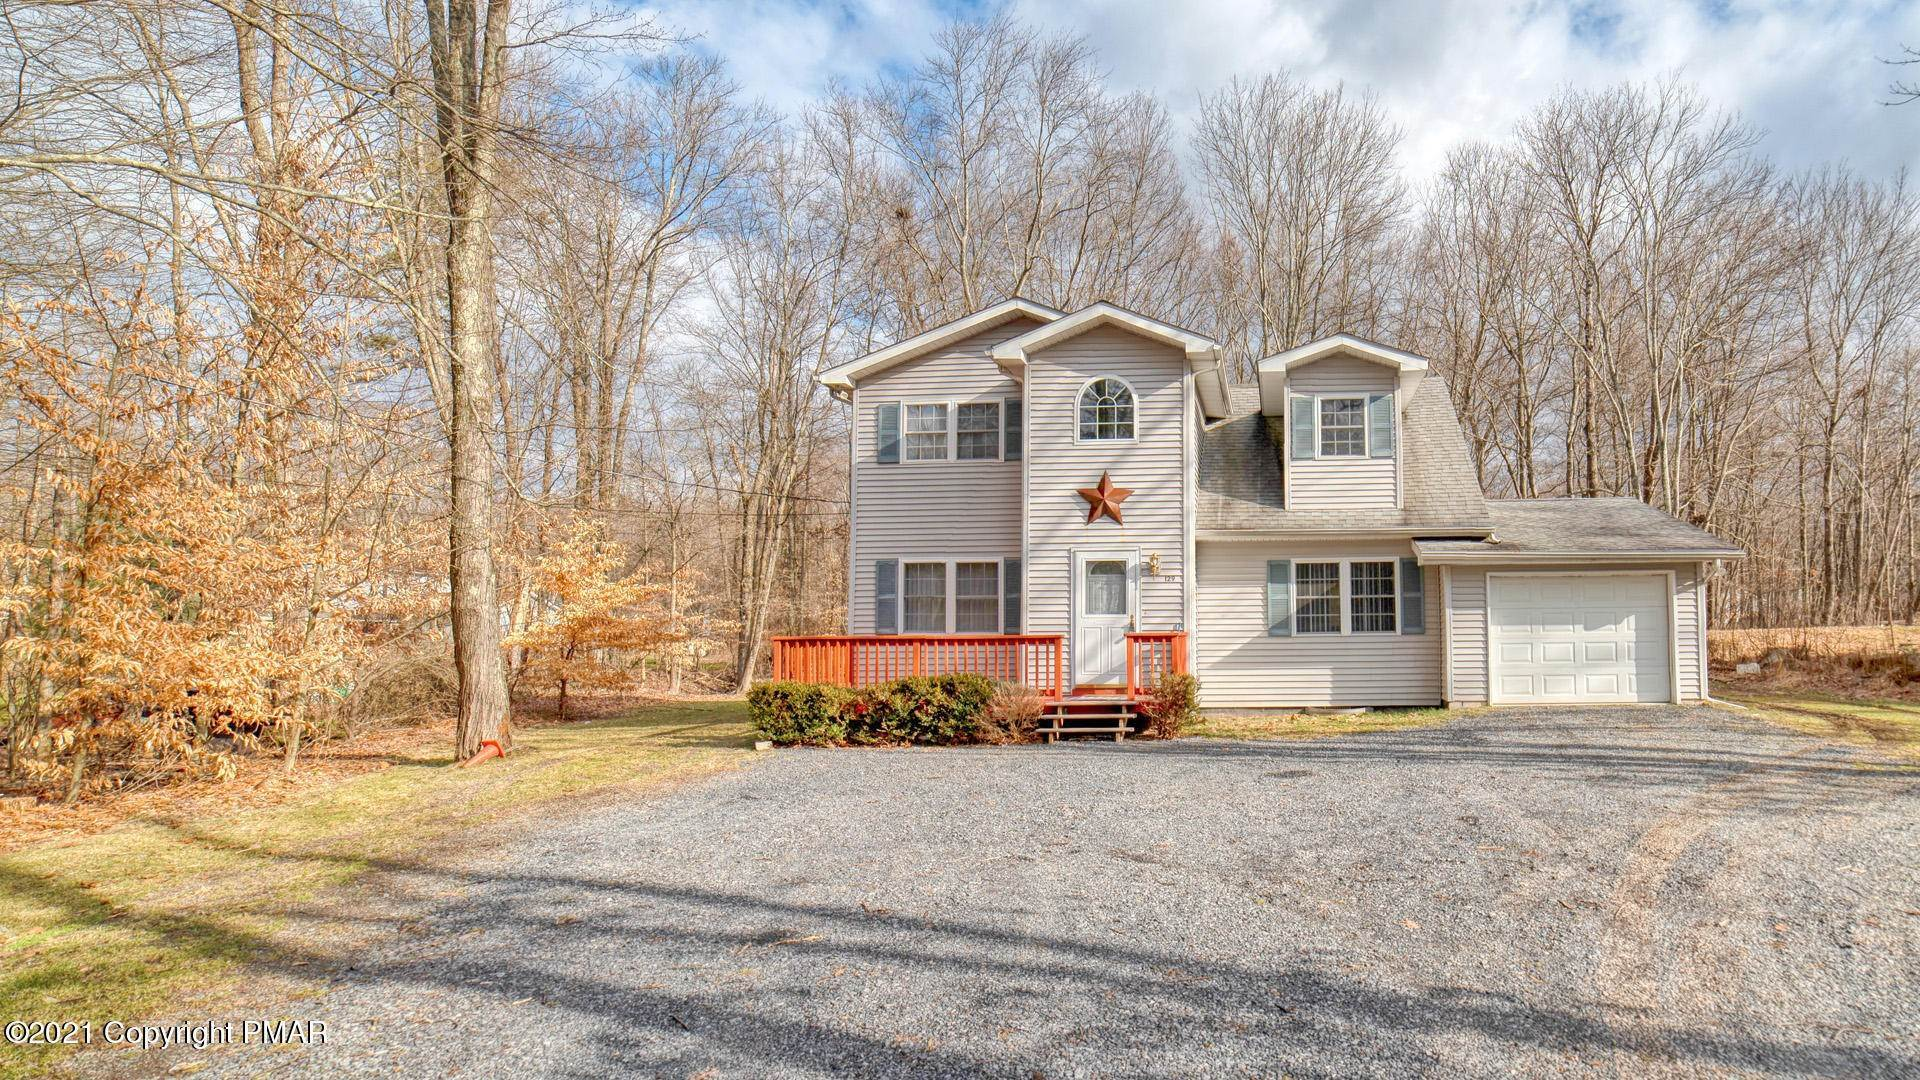 11. Single Family Homes for Sale at 129 Michelle Ln Bartonsville, Pennsylvania 18321 United States